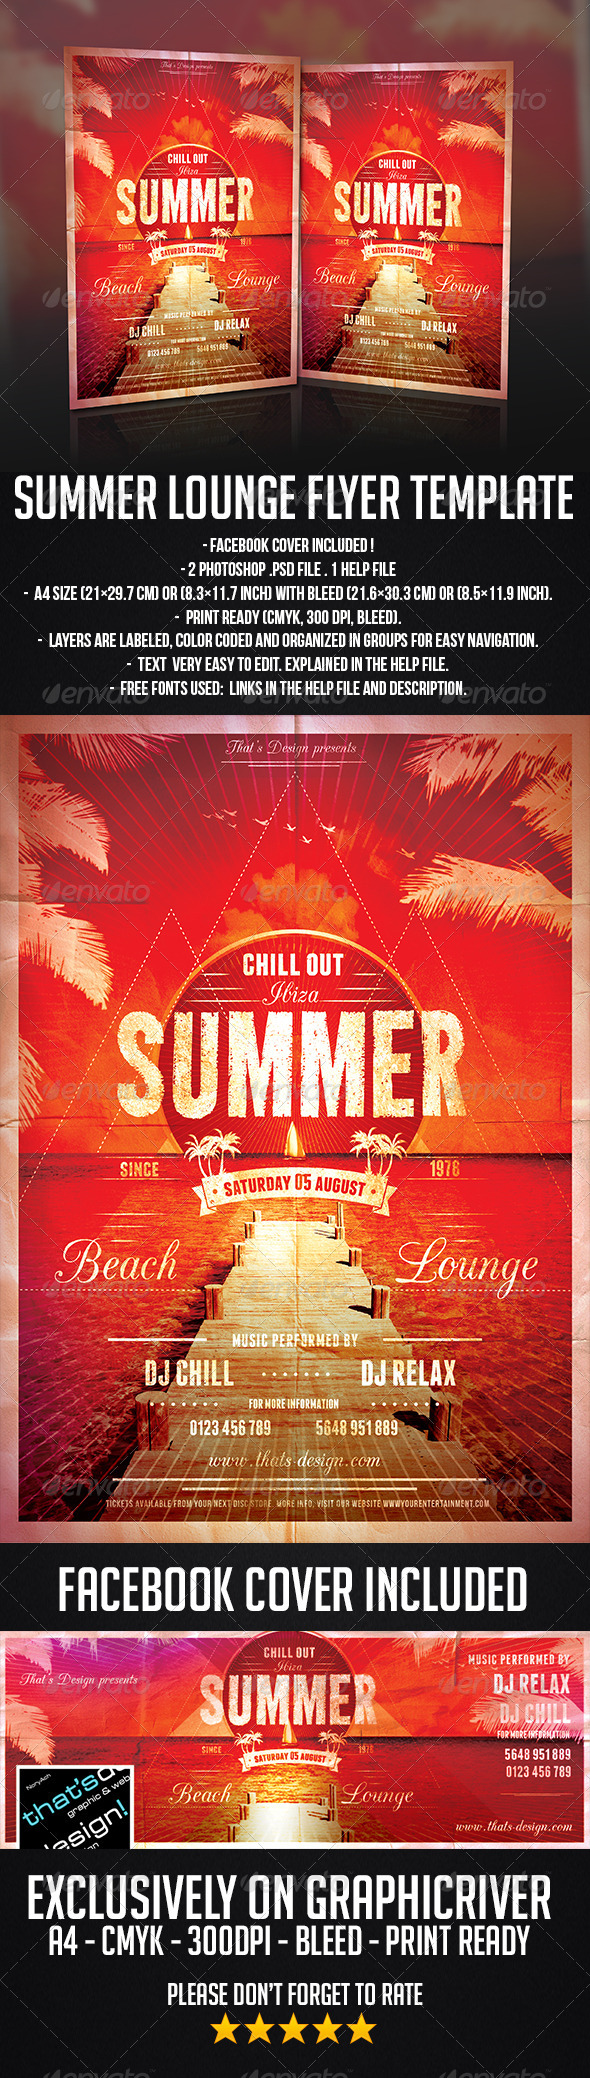 GraphicRiver Summer Lounge Flyer Template 7972361